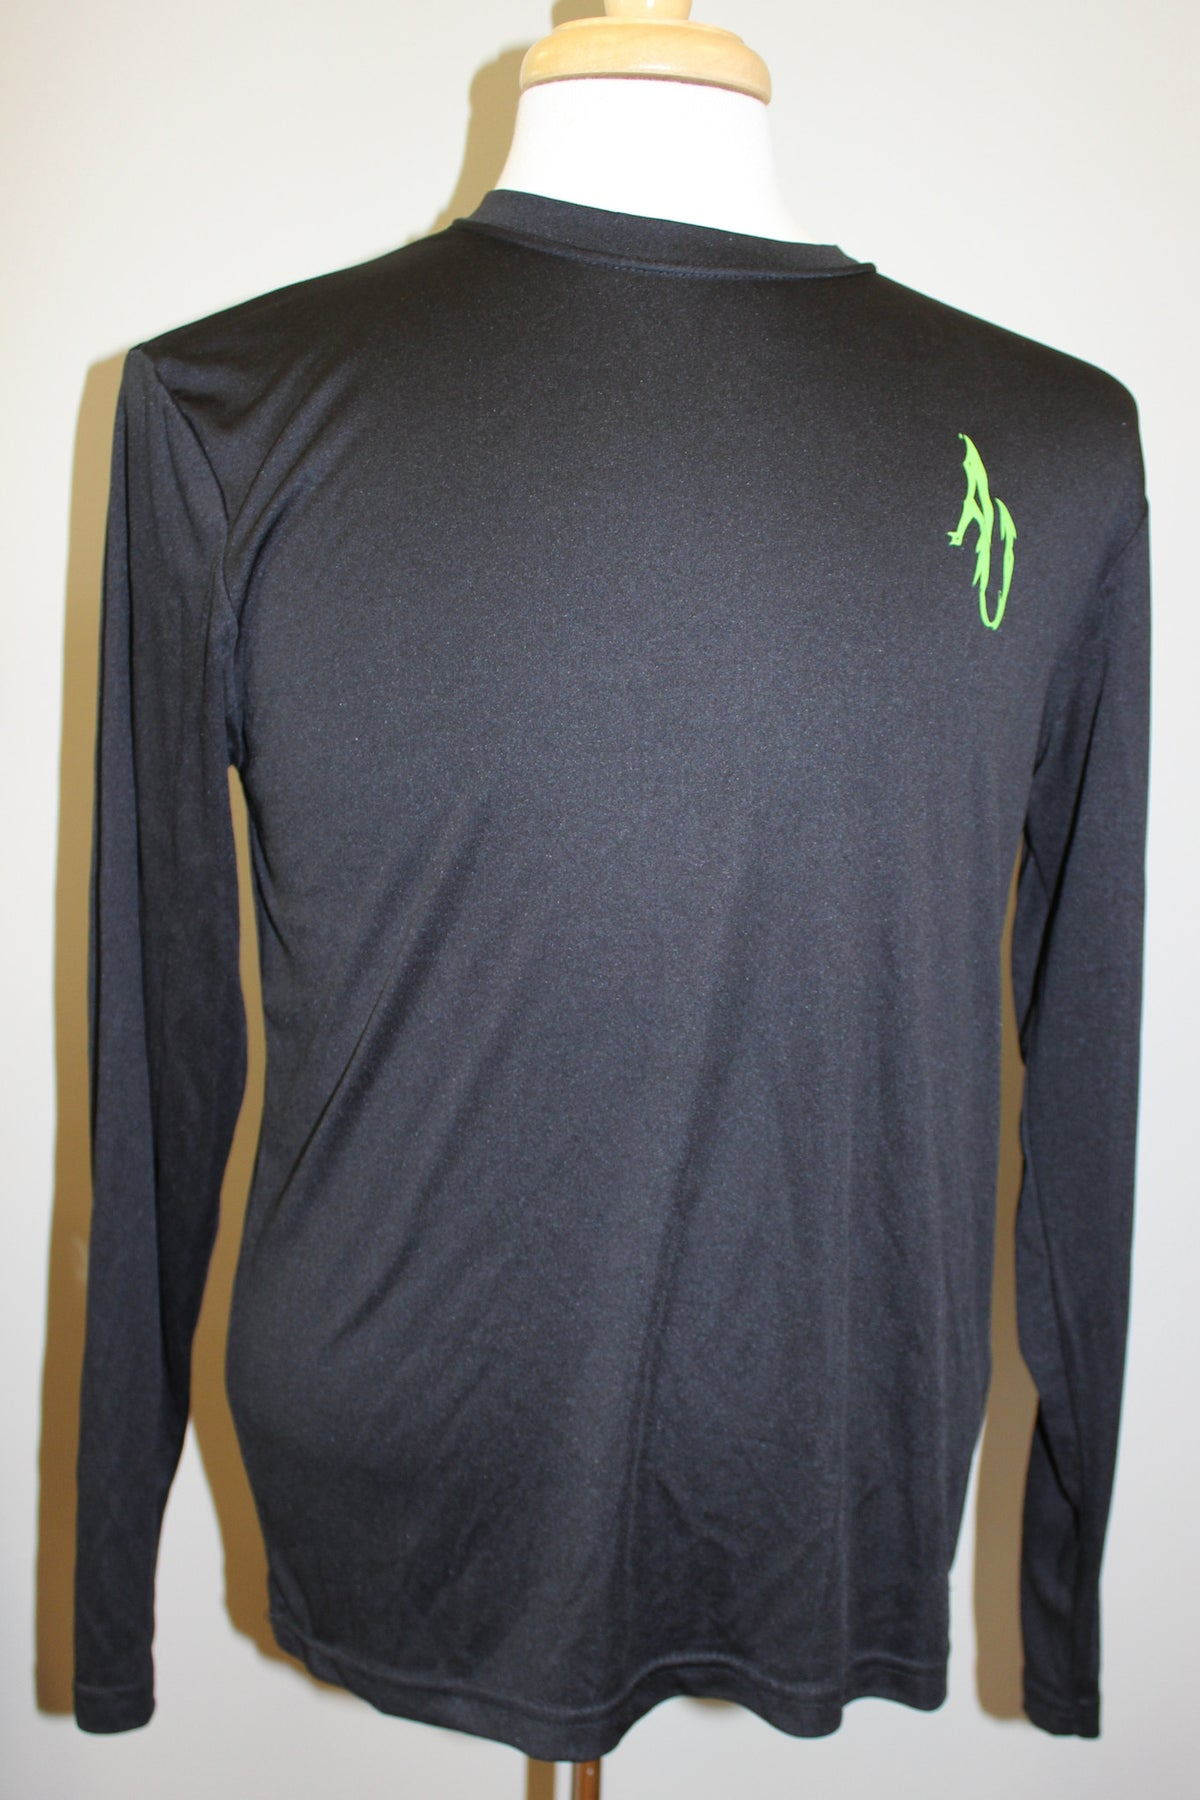 Angler Up: Long Sleeve Performance Tee, Black/Green